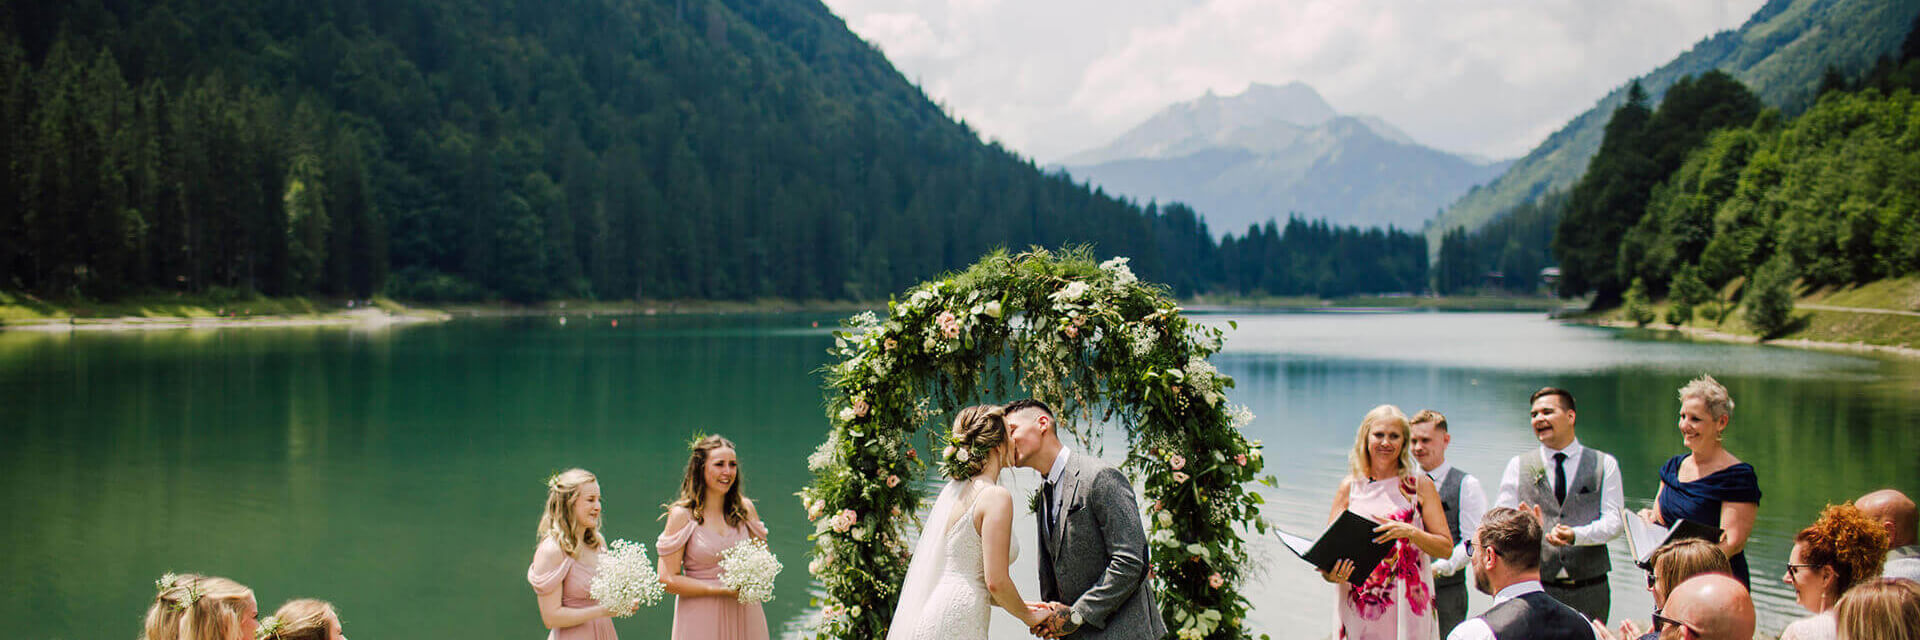 Wedding Morzine Photographer French Alps